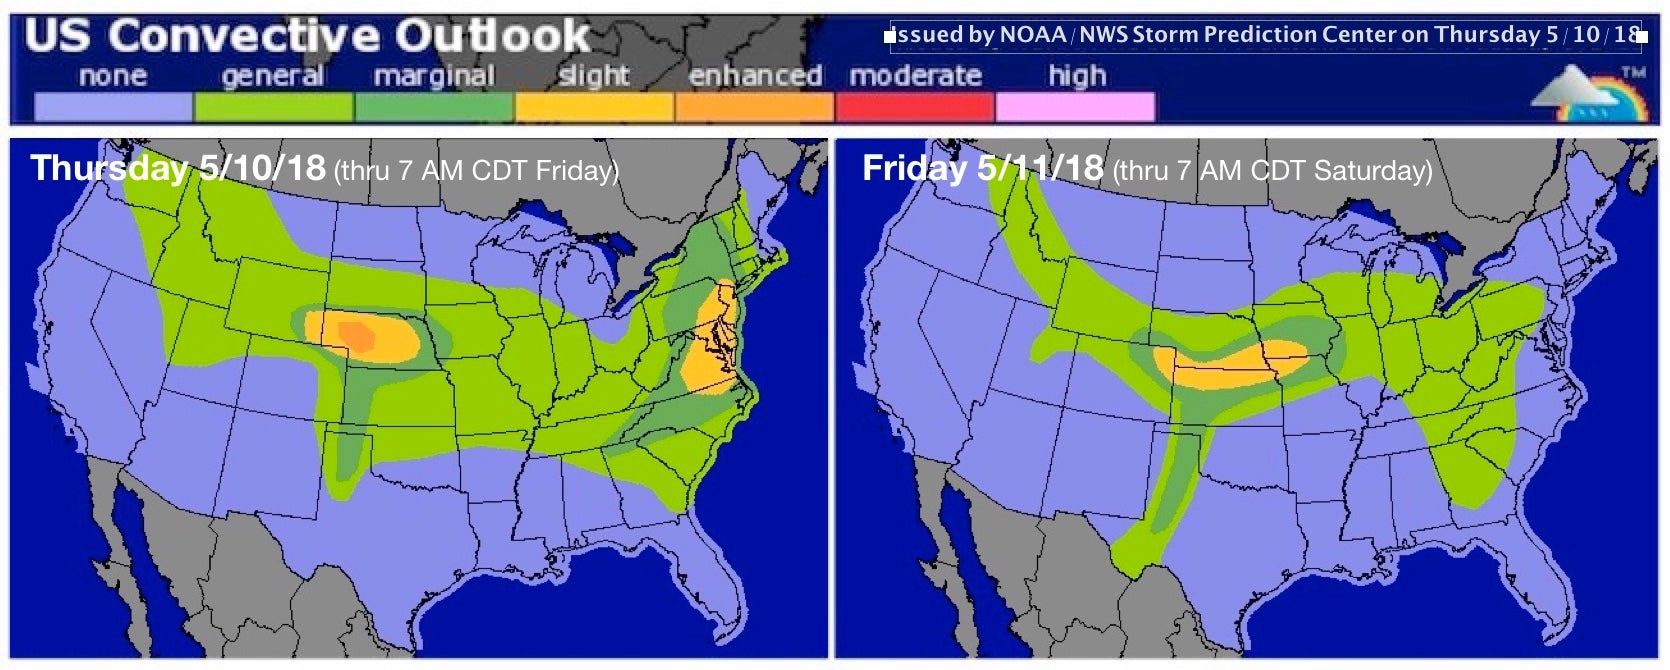 Day 1 and 2 severe outlooks for May 10-11, 2018